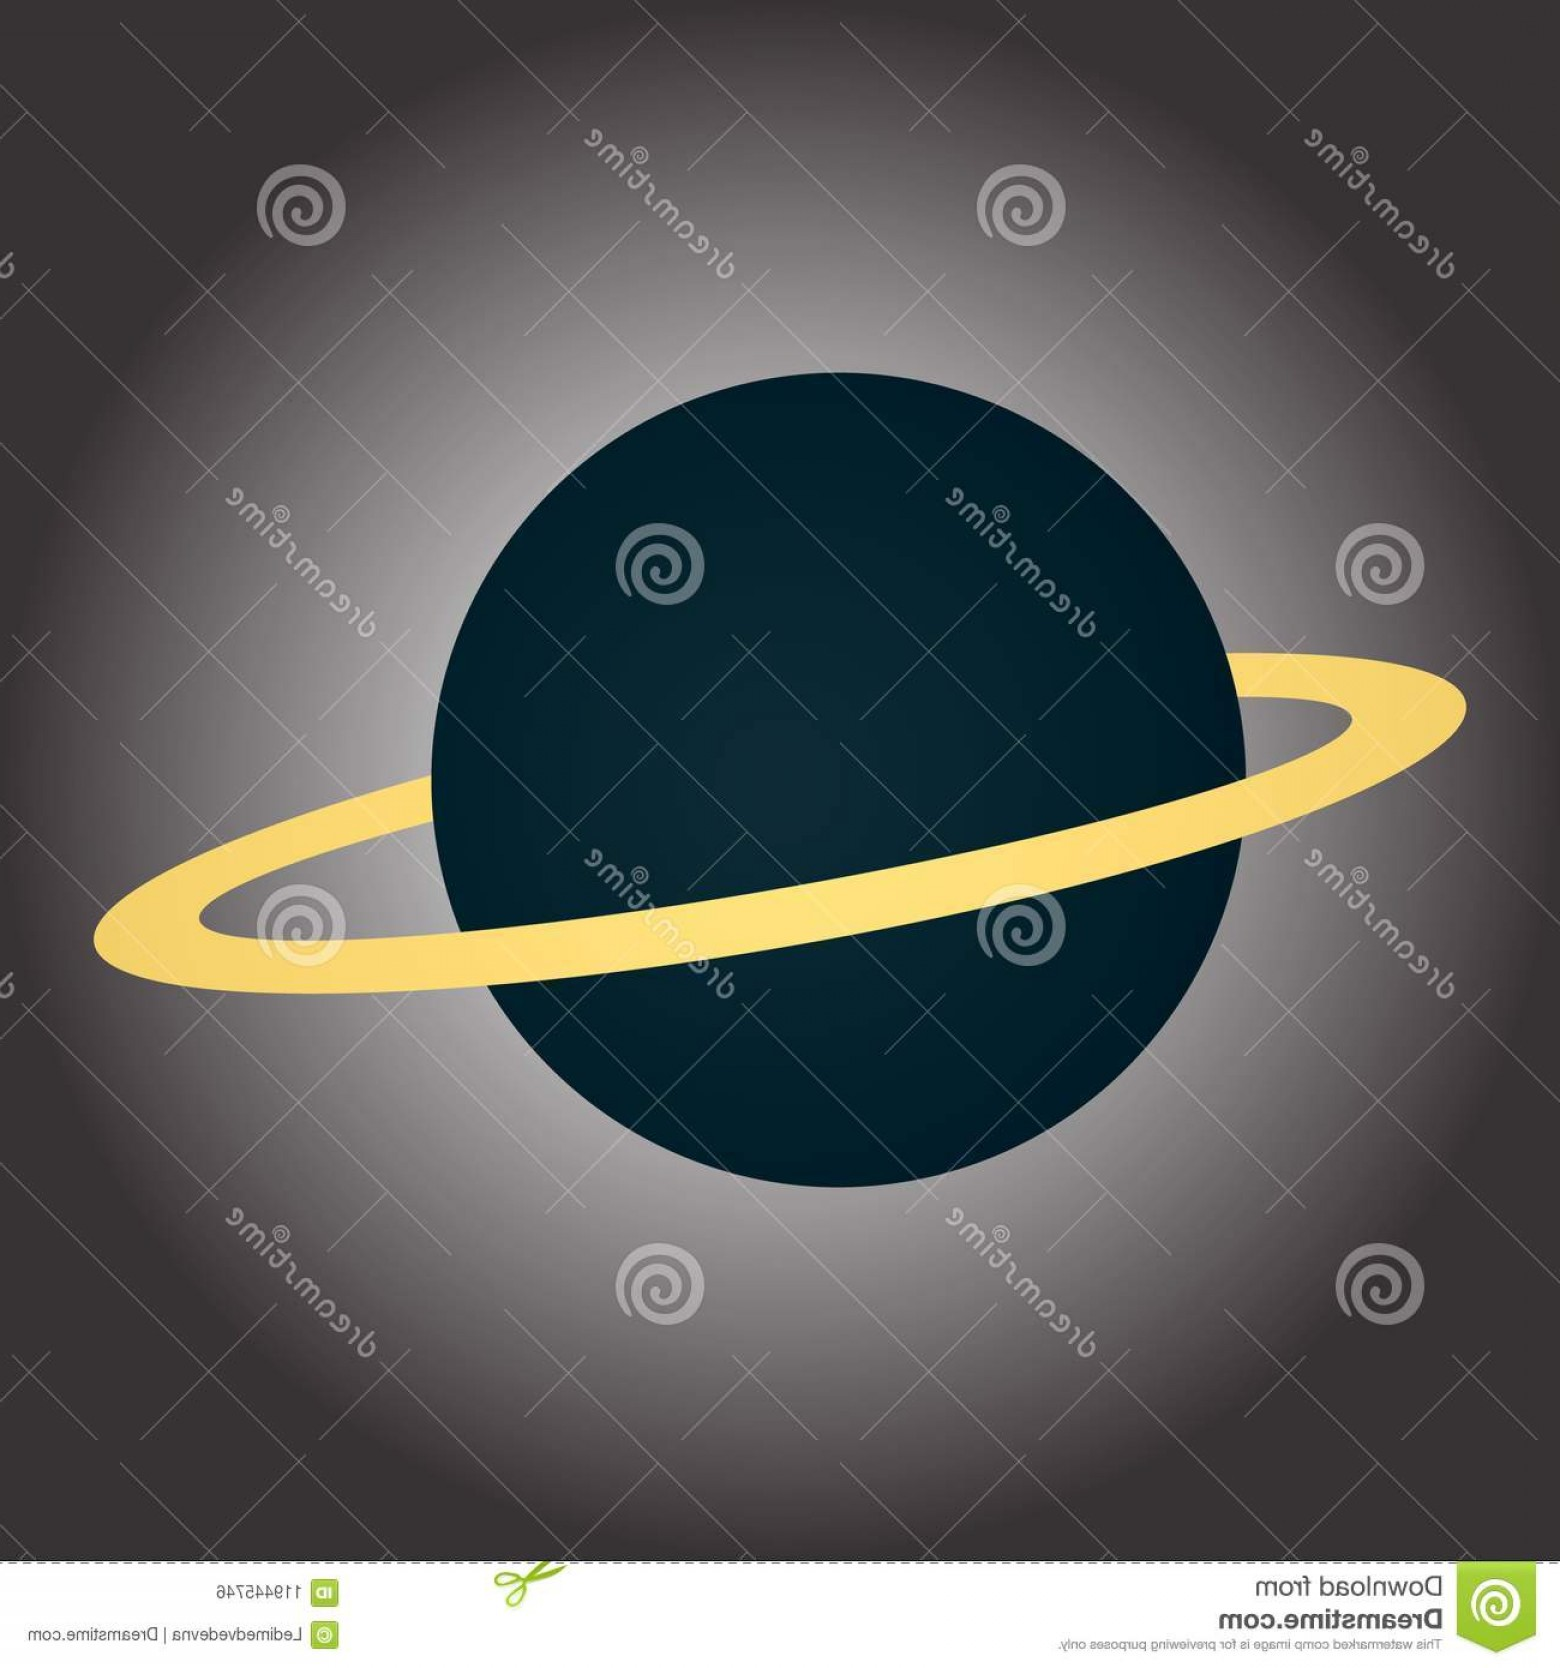 Planets Vector Graphics: Image Blue Planet Ring Illustration Theme Cosmos Vector Graphics Image Blue Planet Ring Image